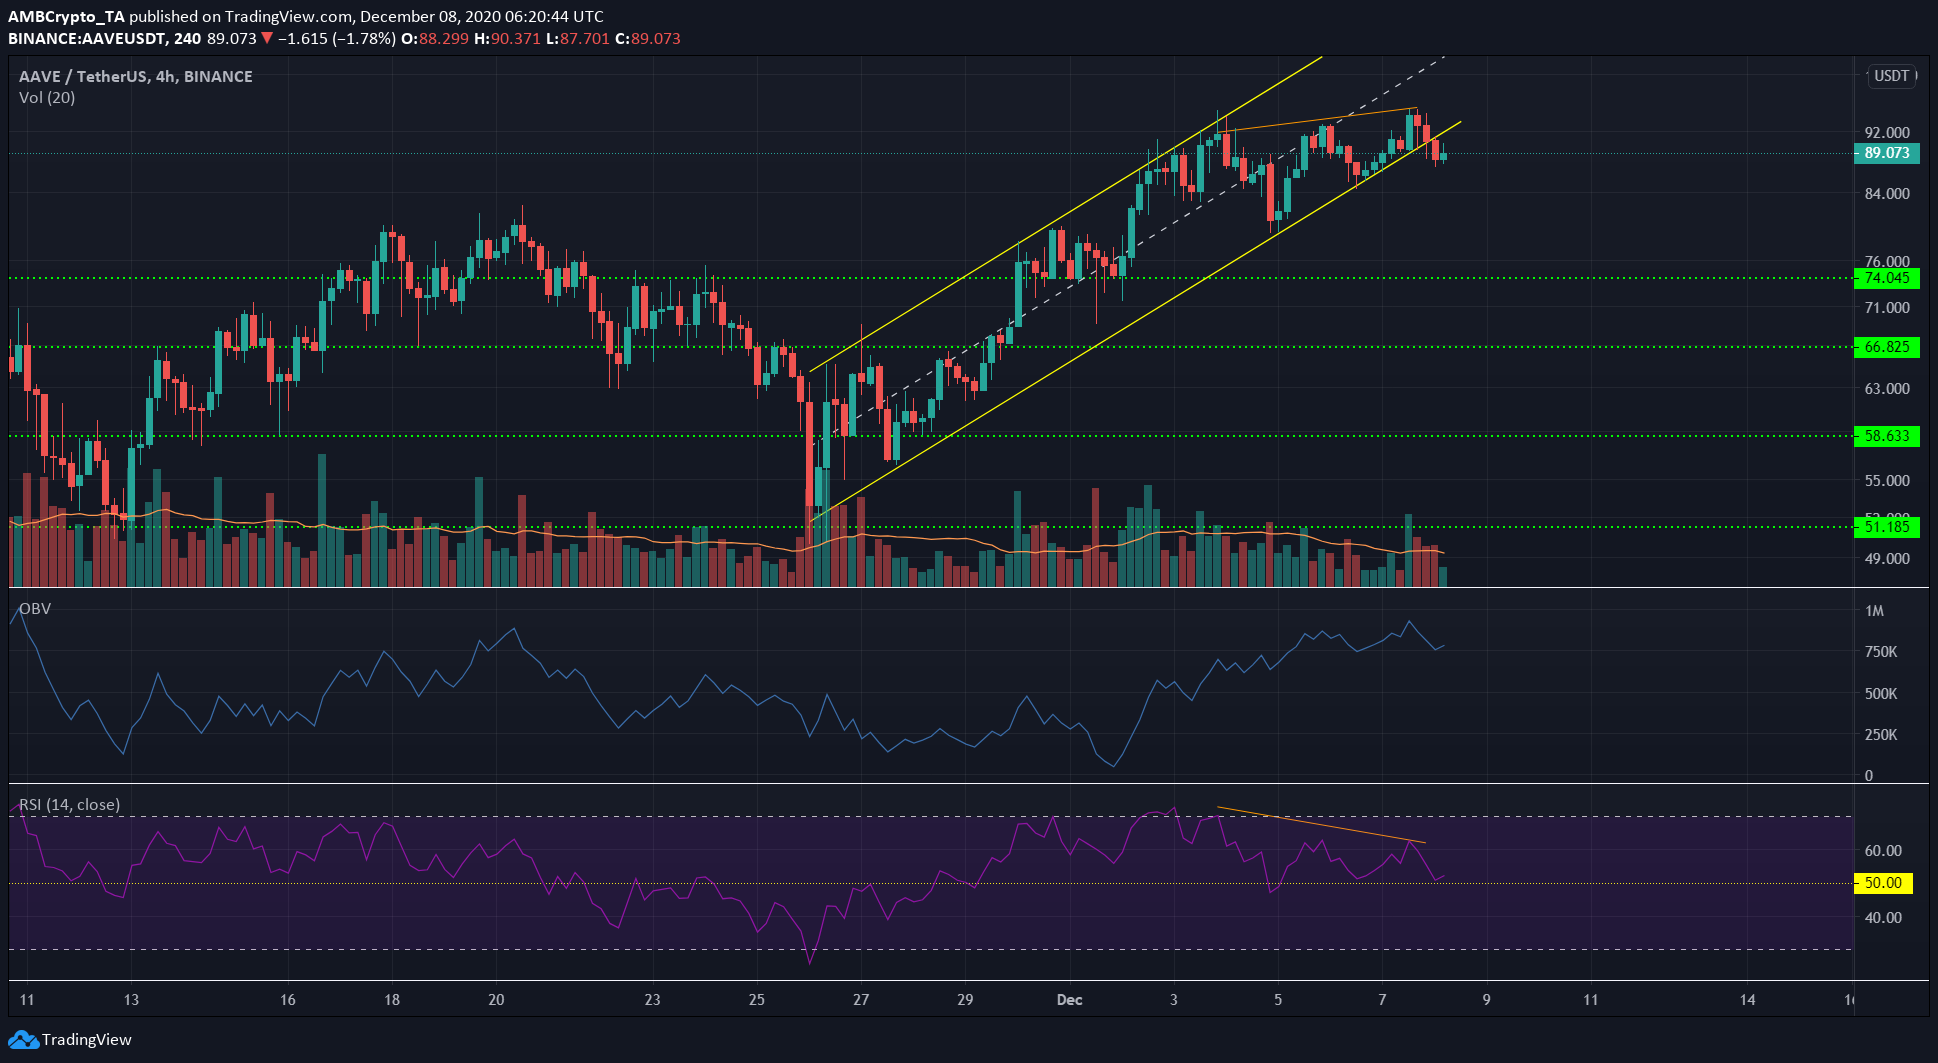 Bitcoin SV, EOS, Aave Price Analysis: 08 December